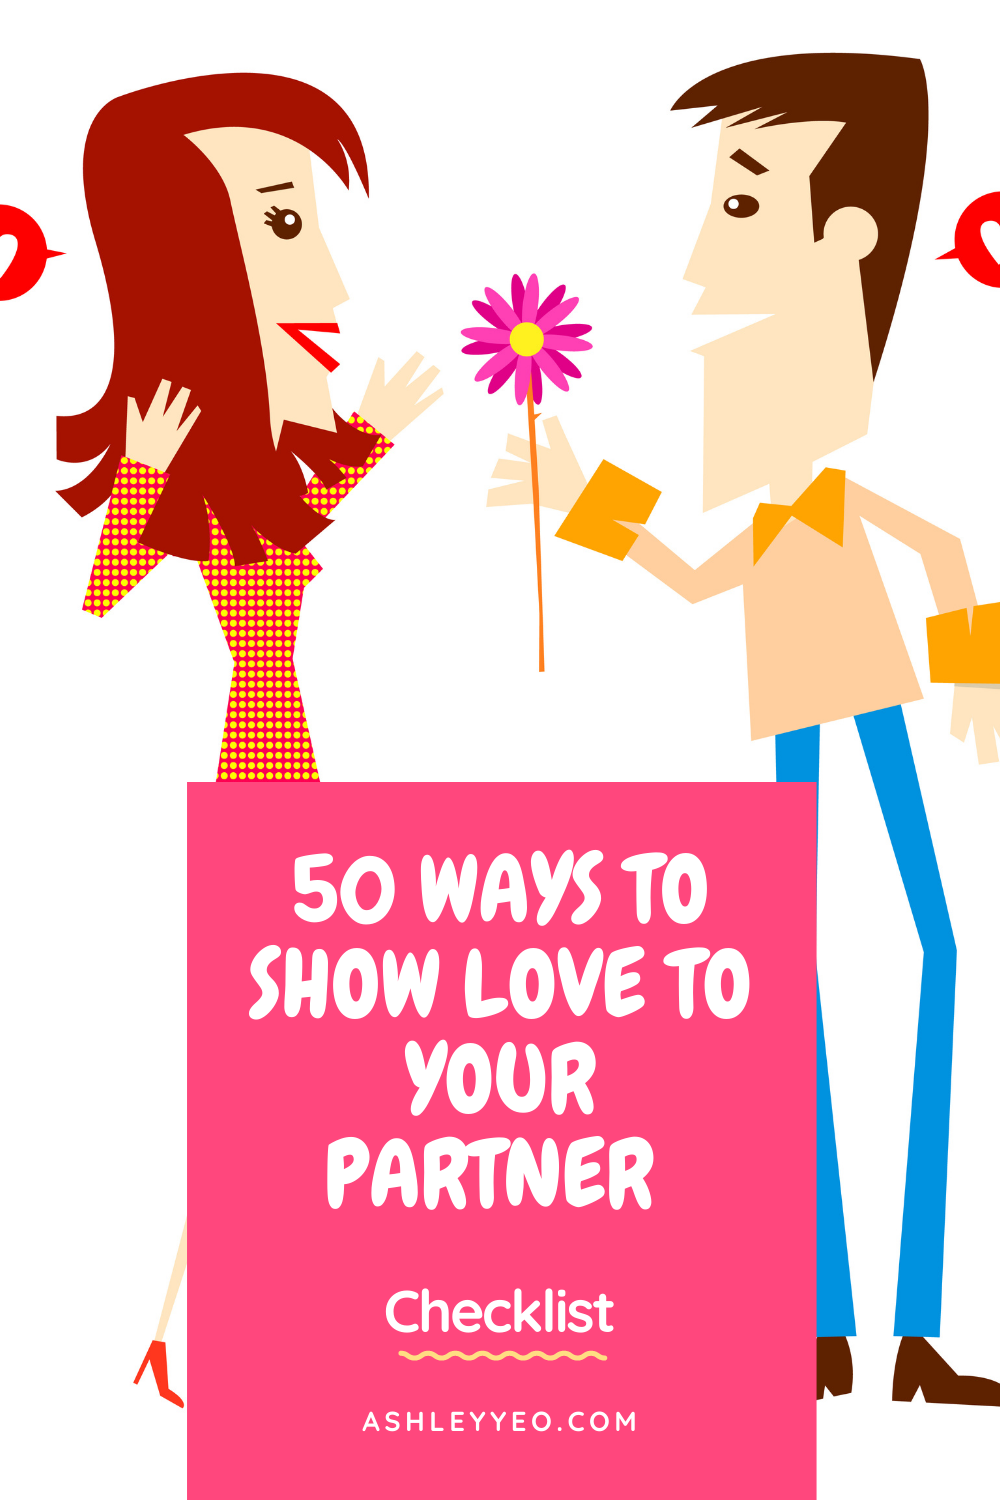 50 Ways To Show Love To Your Partner